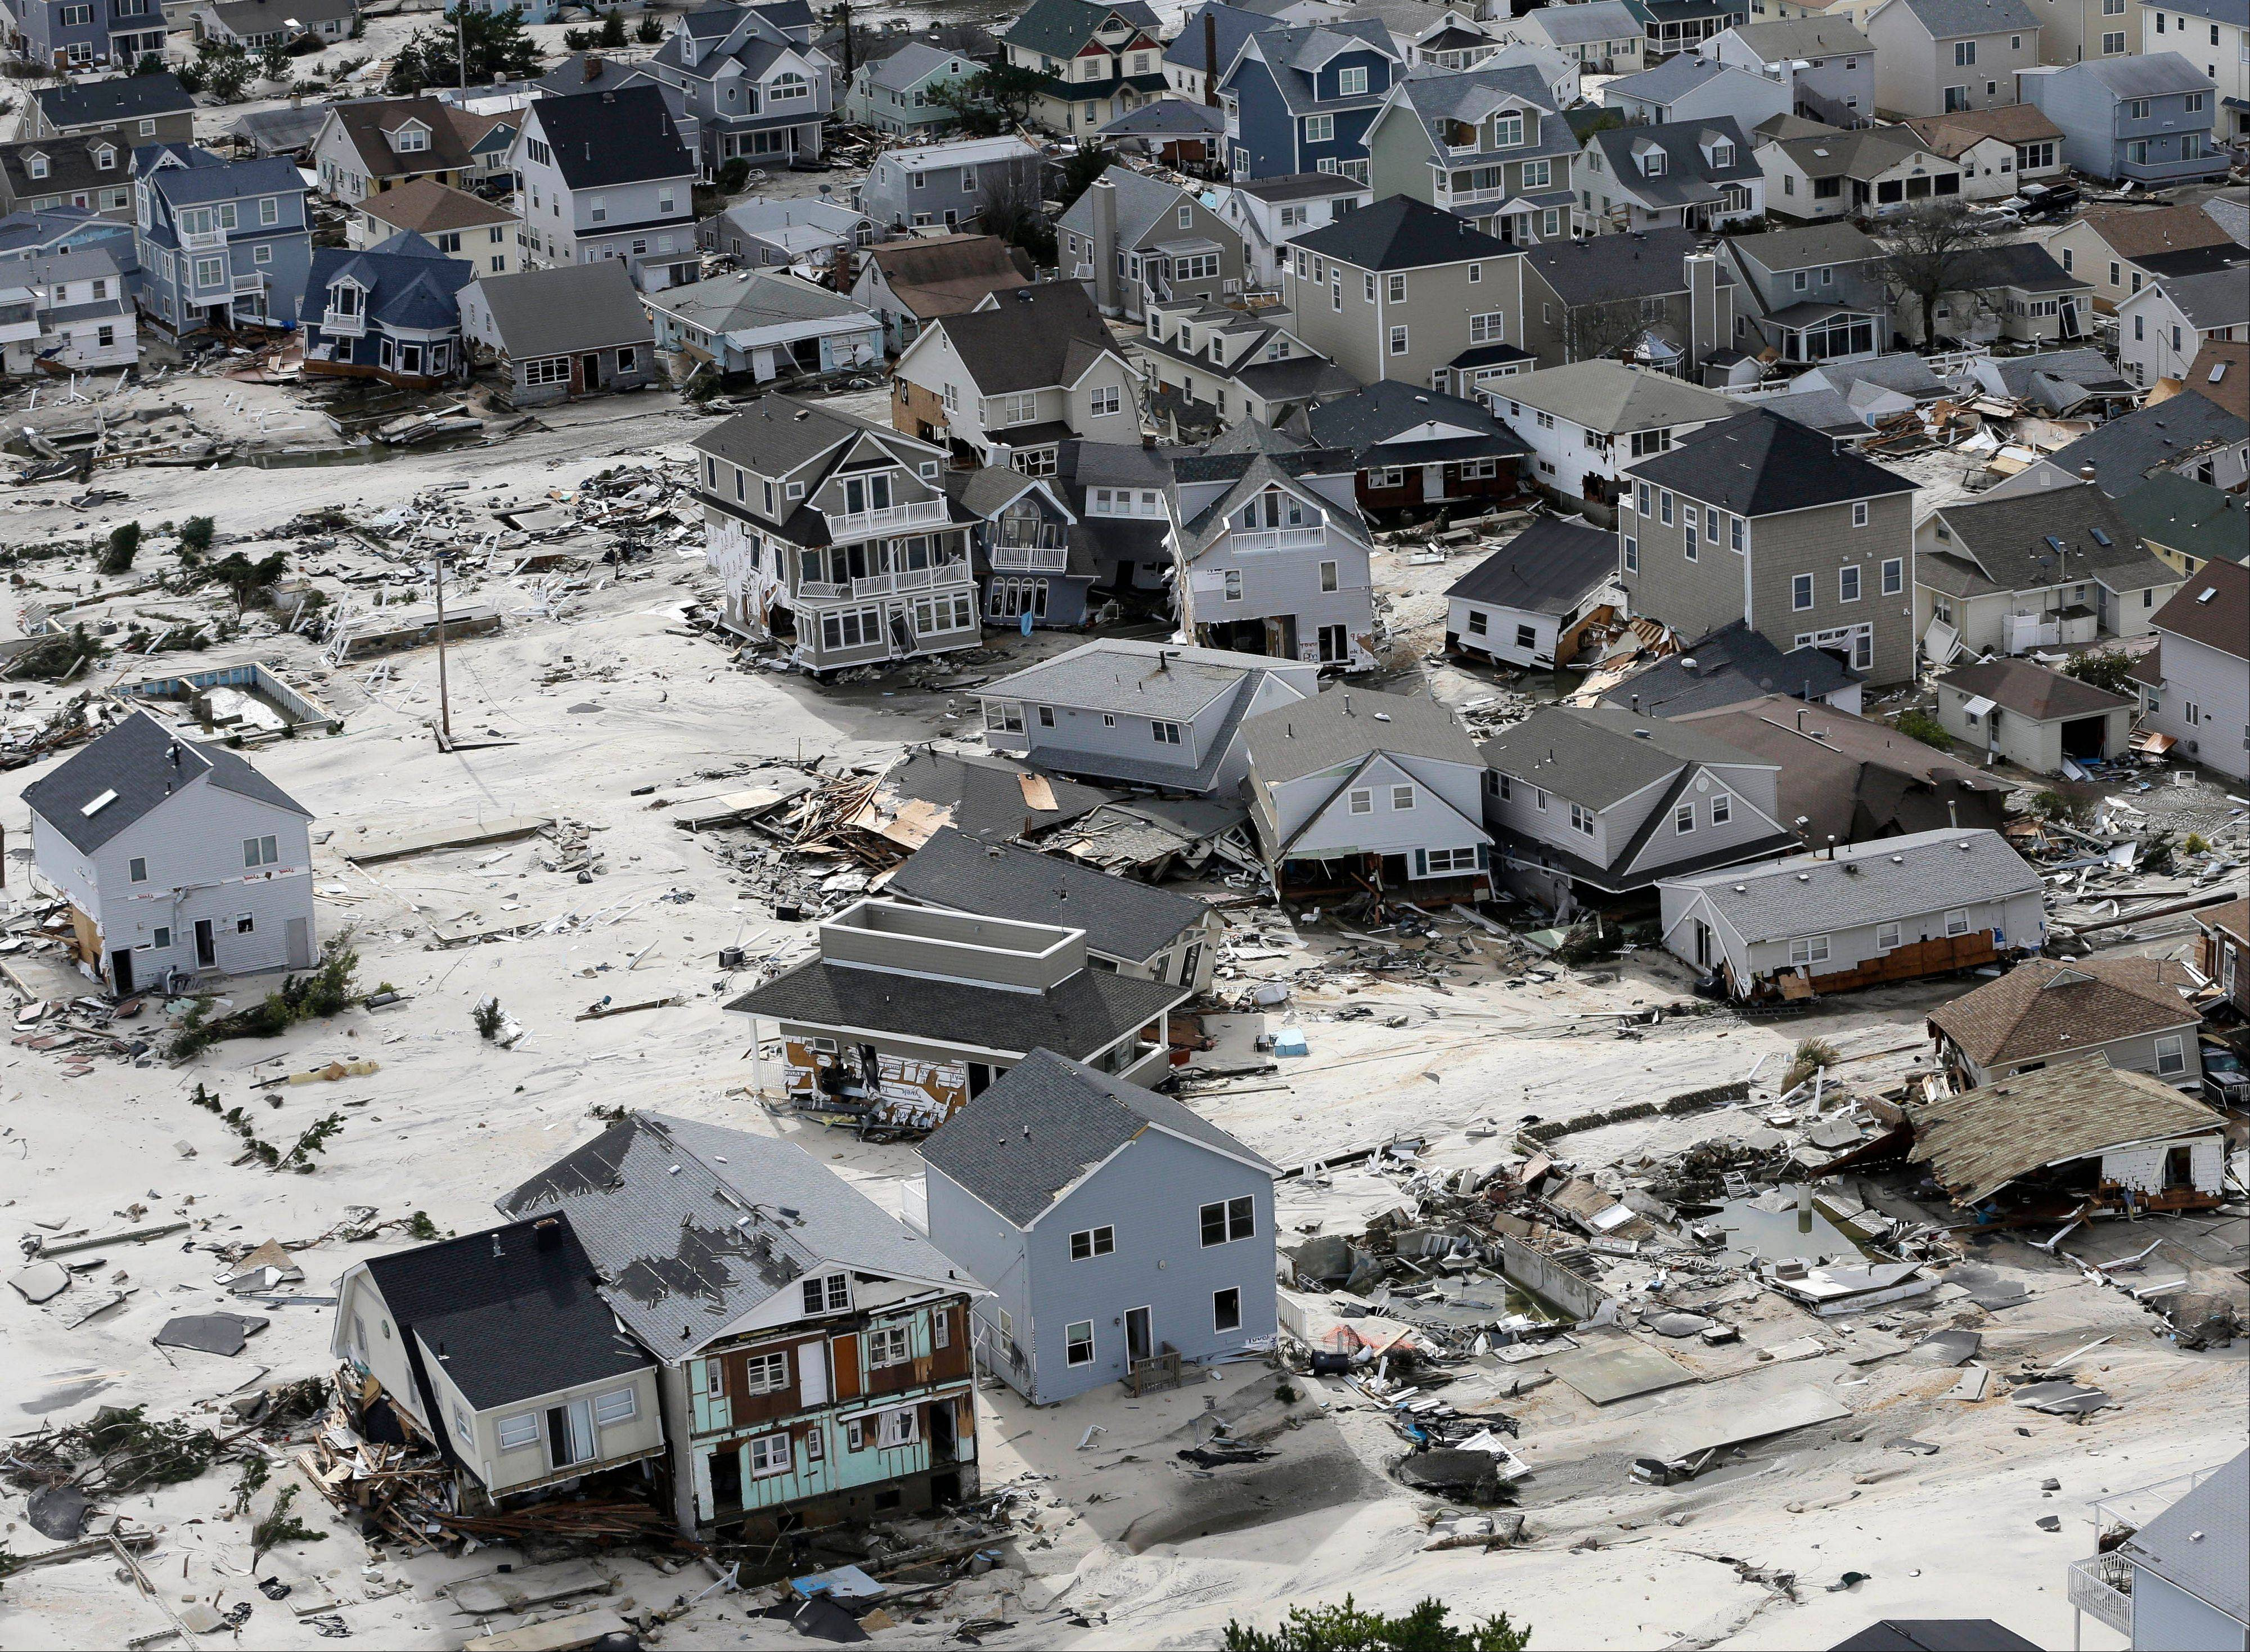 Superstorm Sandy may have one more nasty surprise still to come: higher taxes. Unless shore towns, such as Seaside Heights, N.J., pictured, get a big influx of aid from the state and federal governments, which are themselves strapped for cash, they will have no choice but to raise taxes on homes and businesses that survived to make up for the loss.